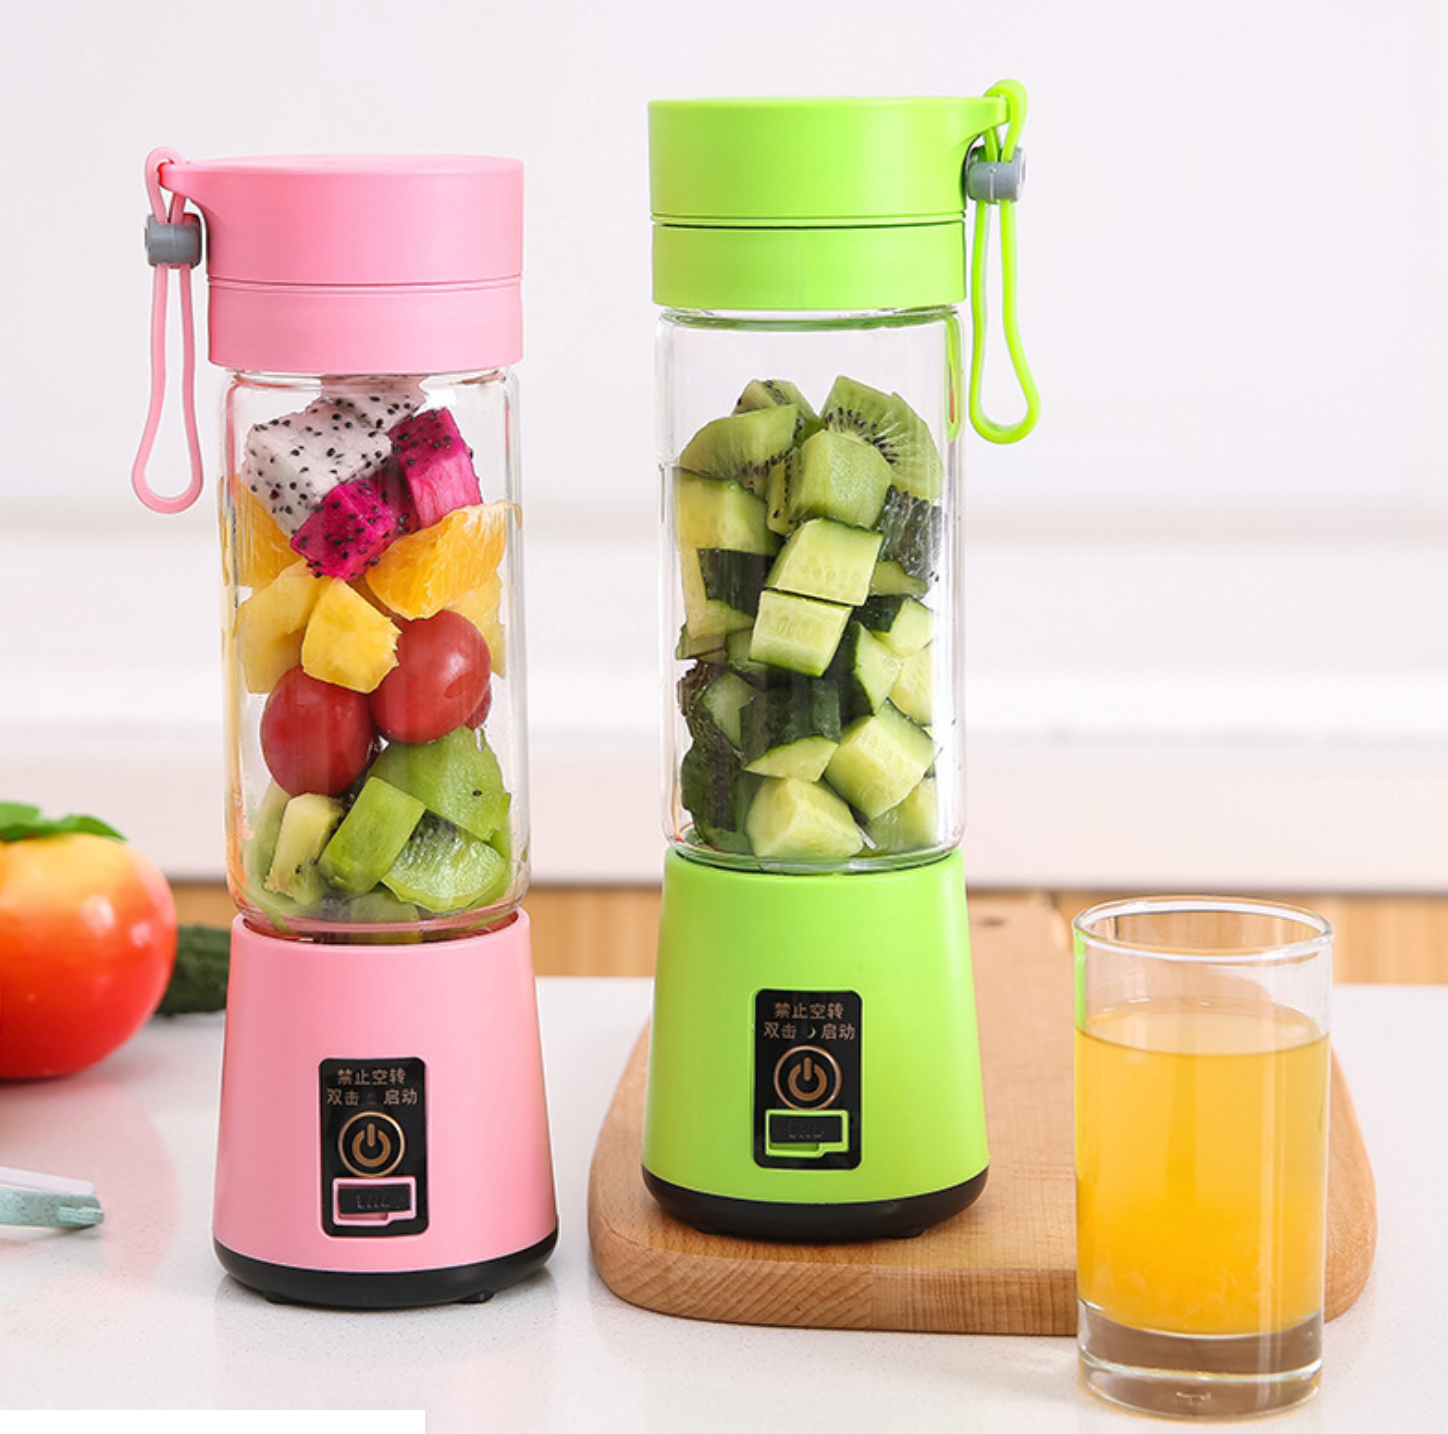 380ml Populaire elektrische sap cup multifunctionele mini Juicer draagbare reizen USB blender